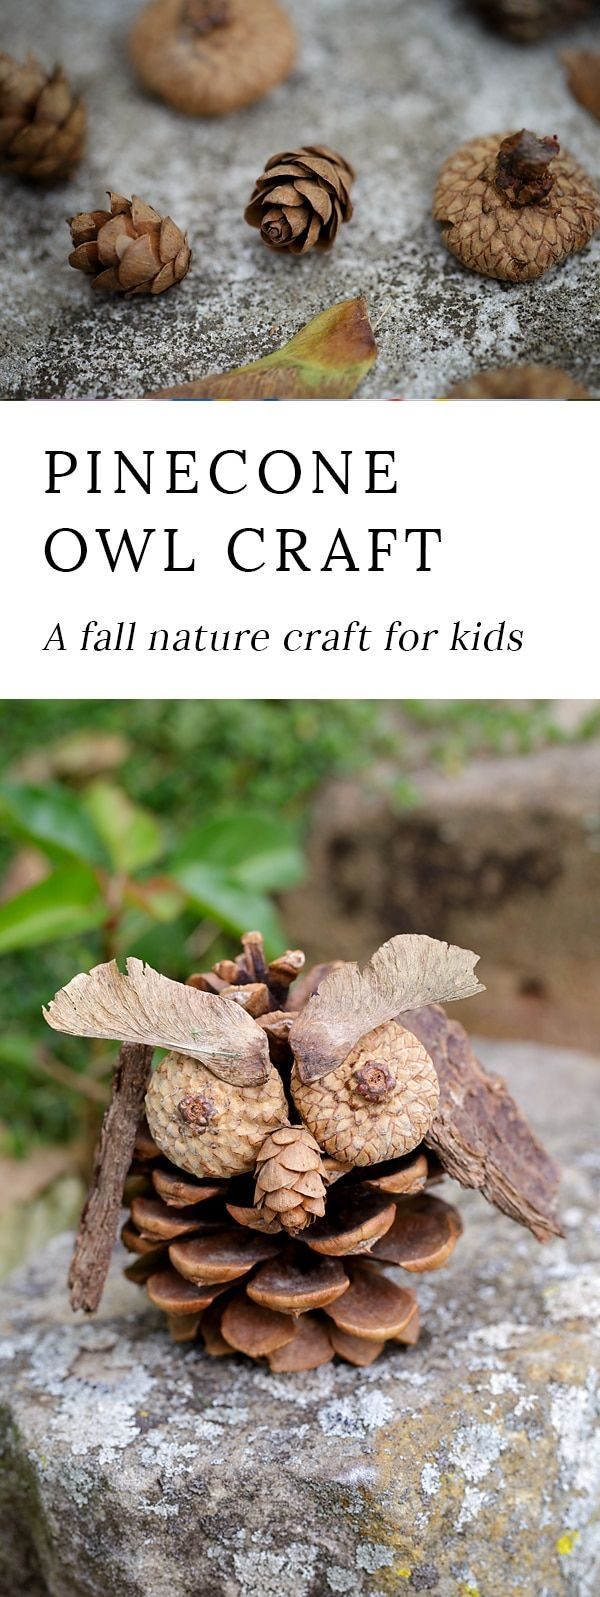 15913 Best Growing Creative Kids Images On Pinterest